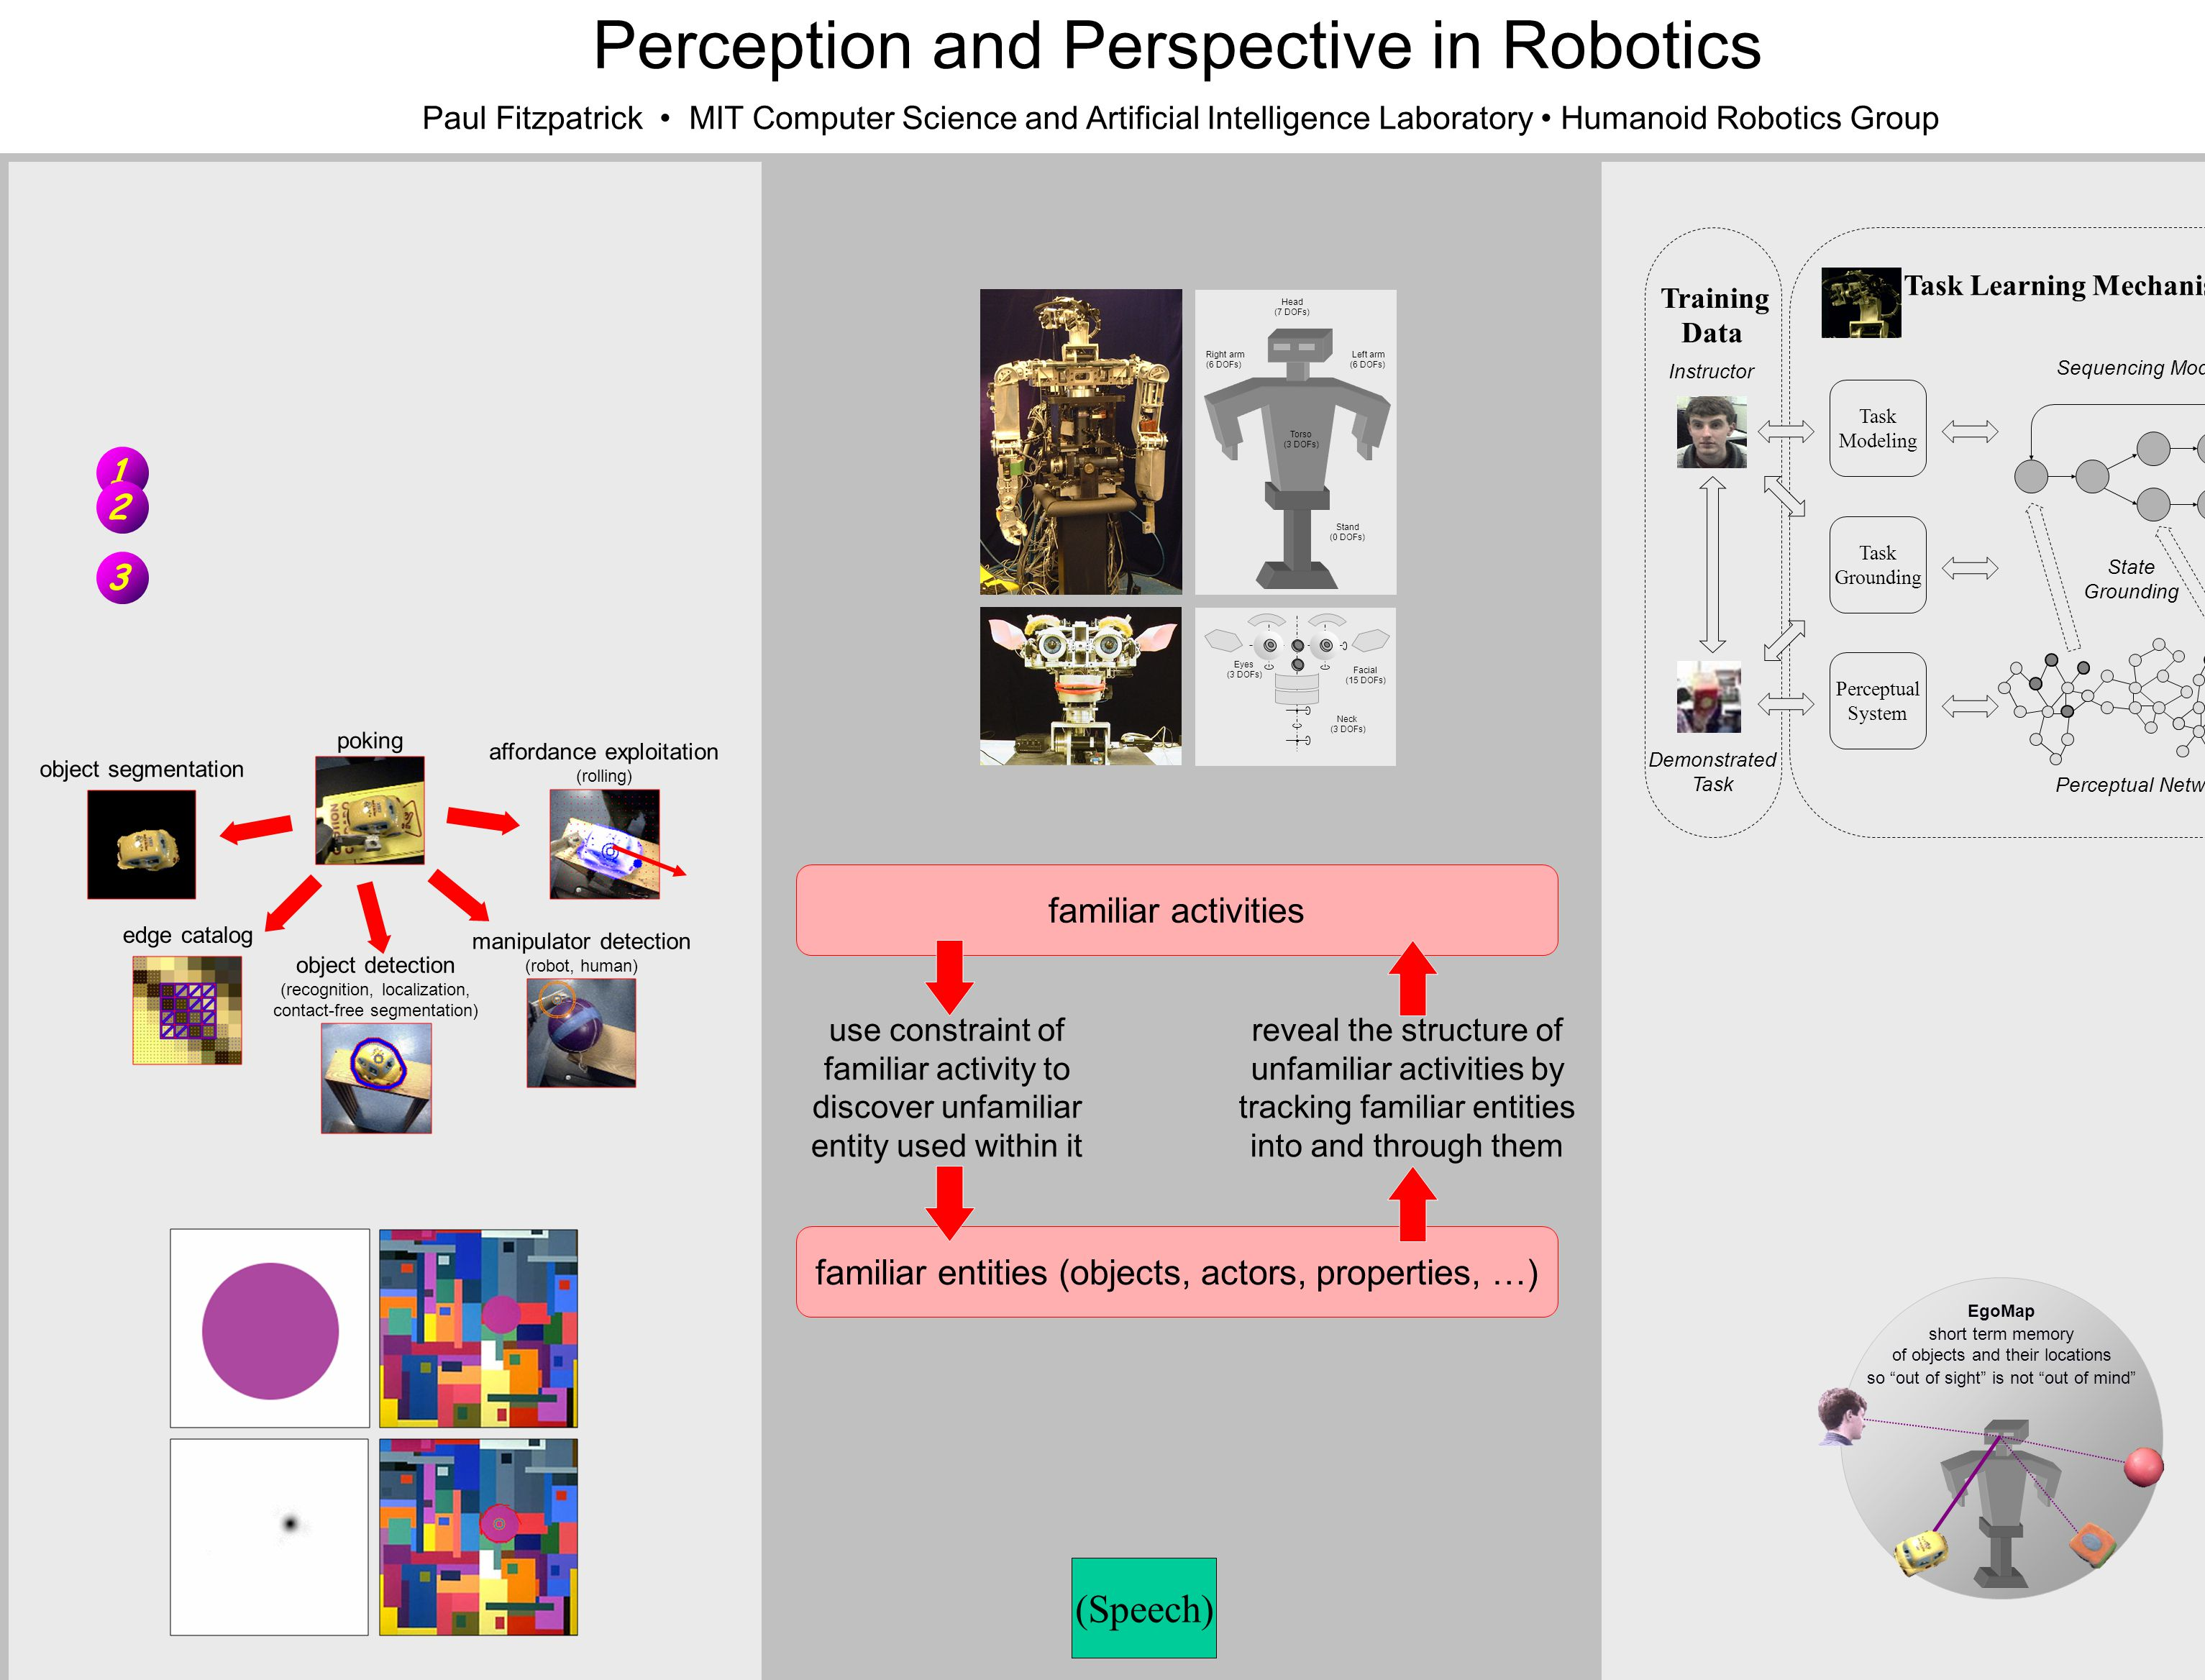 Perception and Perspective in Robotics Paul Fitzpatrick MIT Computer Science and Artificial Intelligence Laboratory Humanoid Robotics Group familiar activities familiar entities (objects, actors, properties, …) use constraint of familiar activity to discover unfamiliar entity used within it reveal the structure of unfamiliar activities by tracking familiar entities into and through them poking object segmentation edge catalog object detection (recognition, localization, contact-free segmentation) affordance exploitation (rolling) manipulator detection (robot, human) EgoMap short term memory of objects and their locations so out of sight is not out of mind Sequencing Model Instructor Task Modeling Task Grounding Perceptual System Perceptual Network Demonstrated Task Task Learning Mechanism State Grounding Training Data Head (7 DOFs) Torso (3 DOFs) Left arm (6 DOFs) Right arm (6 DOFs) Stand (0 DOFs) Facial (15 DOFs) Neck (3 DOFs) Eyes (3 DOFs) (Speech) 1 2 3